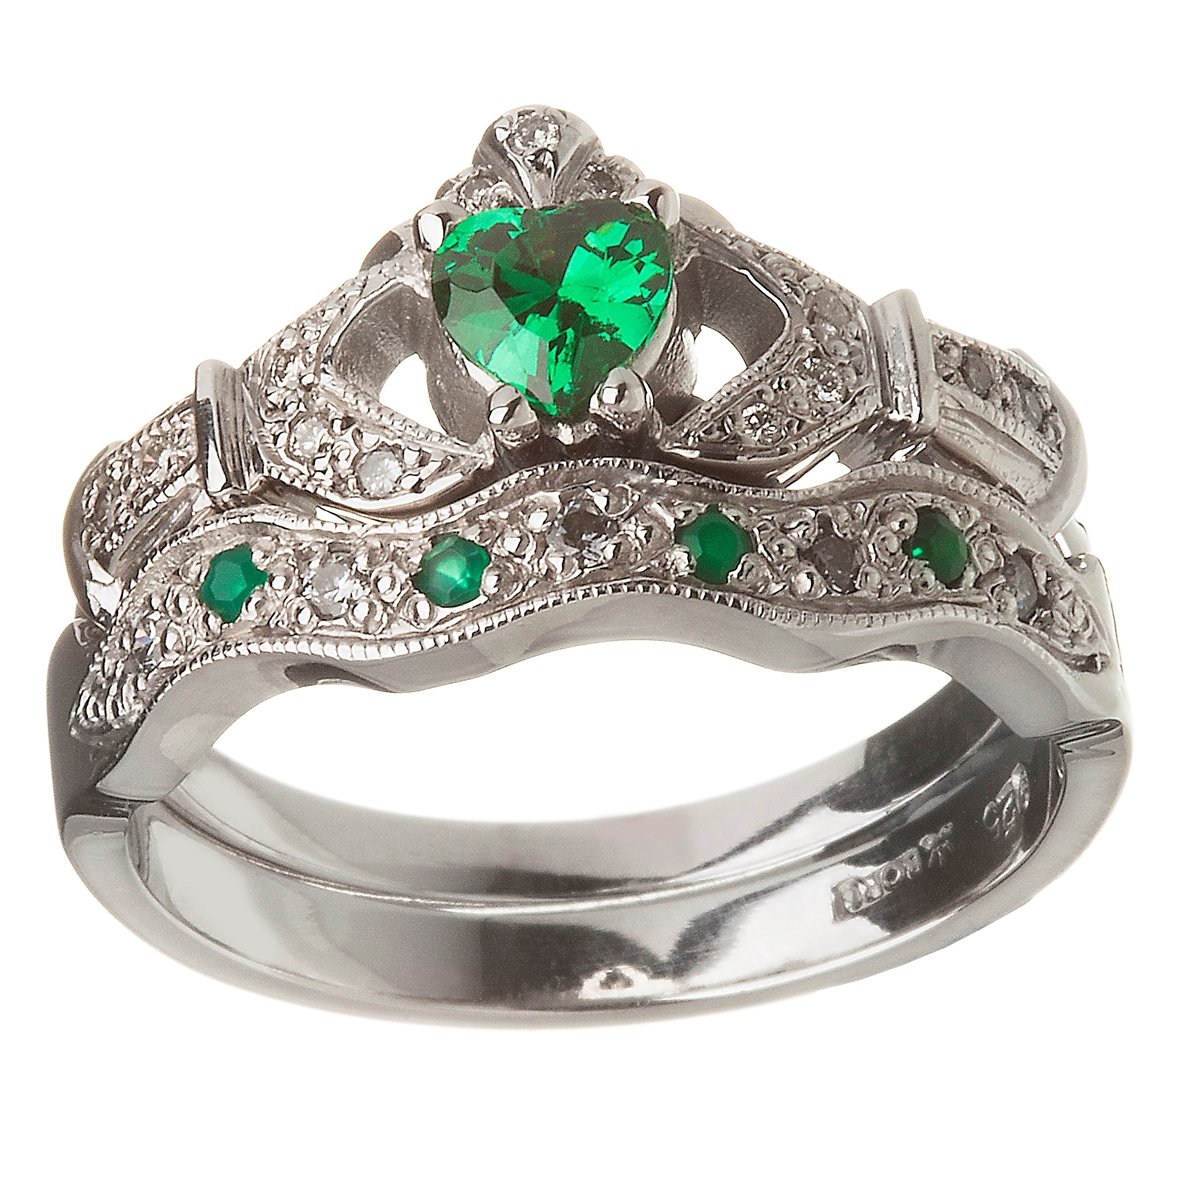 14k white gold emerald set heart claddagh ring wedding ring set - Claddagh Wedding Ring Sets